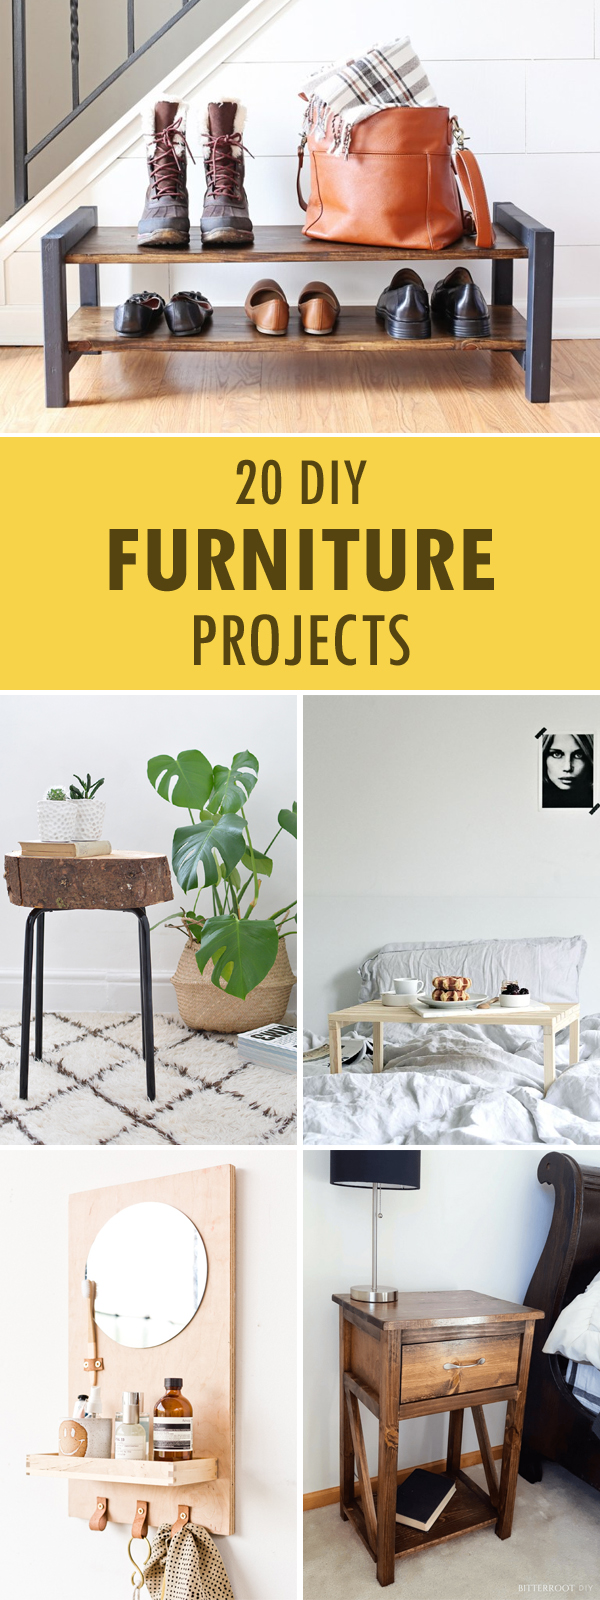 20 DIY Furniture Projects You Can Make On A Budget